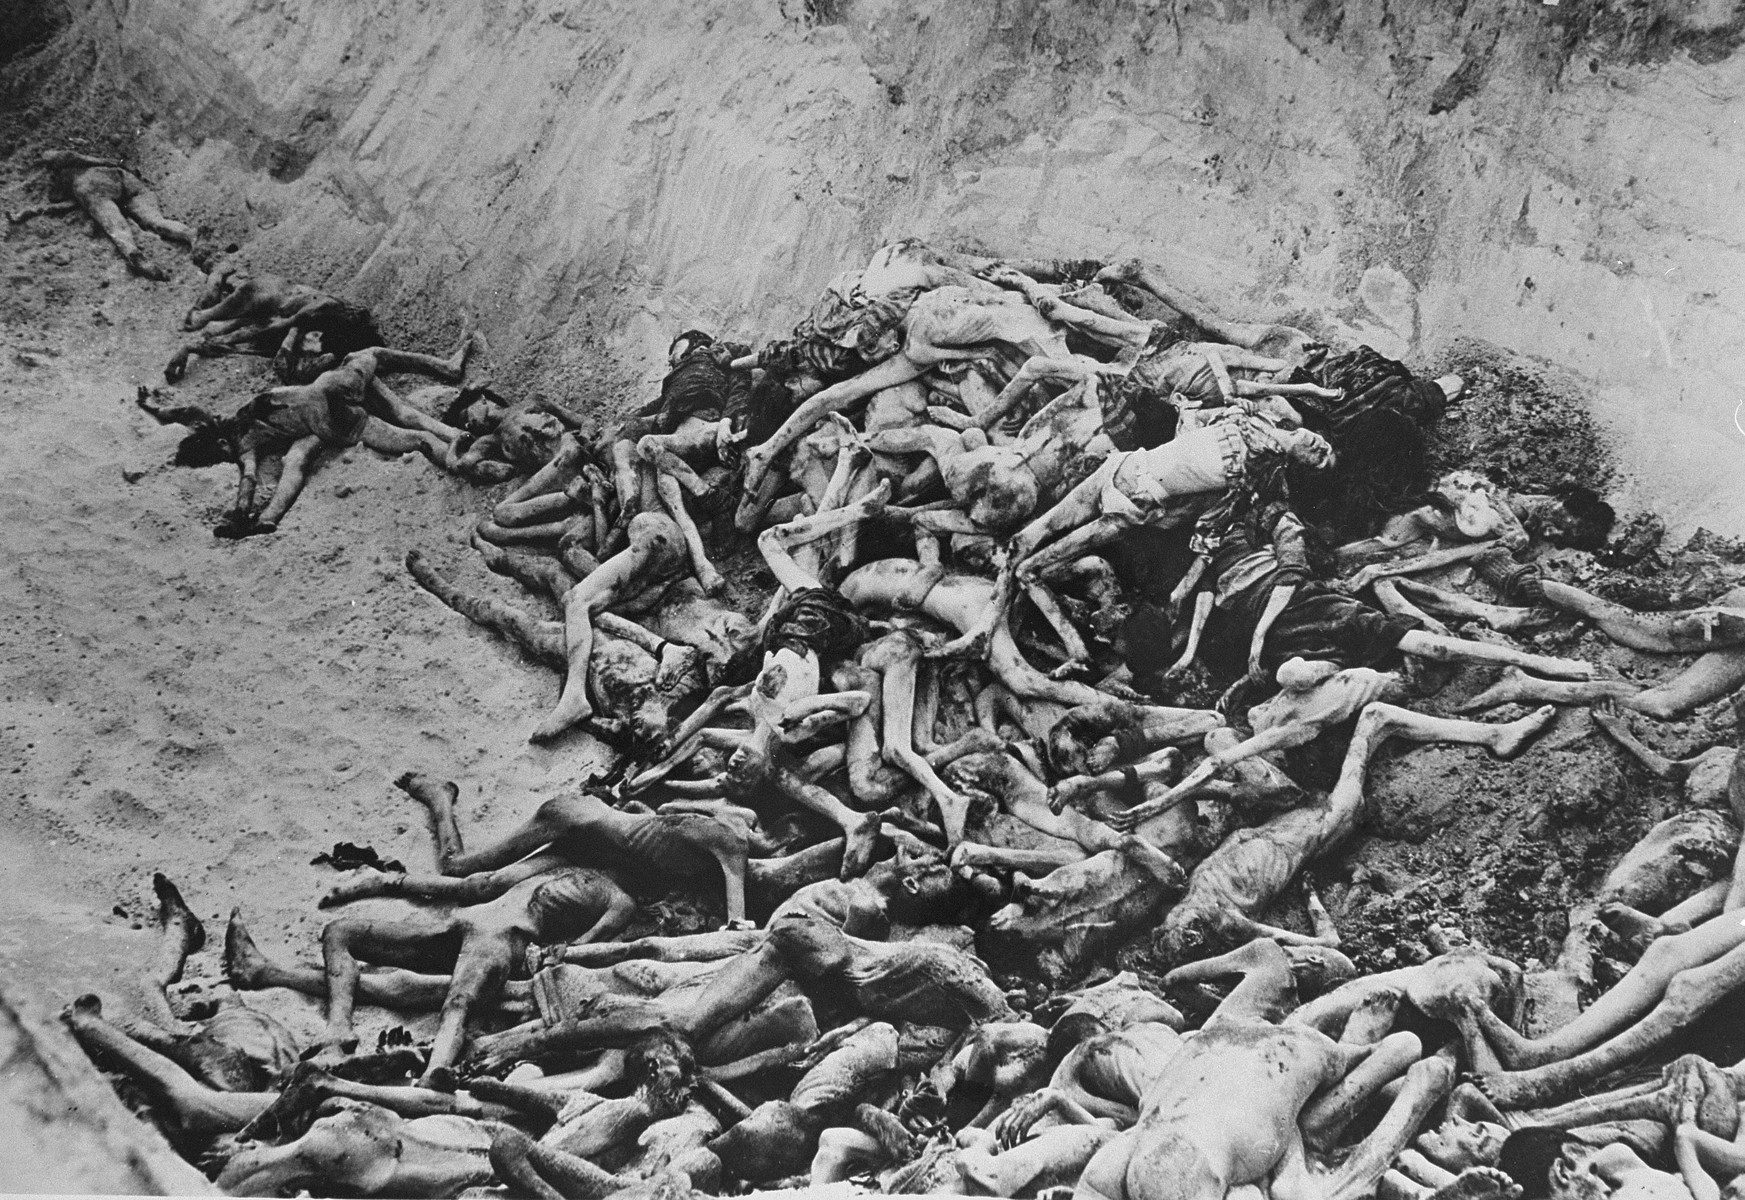 View of a mass grave in the Bergen-Belsen concentration camp.